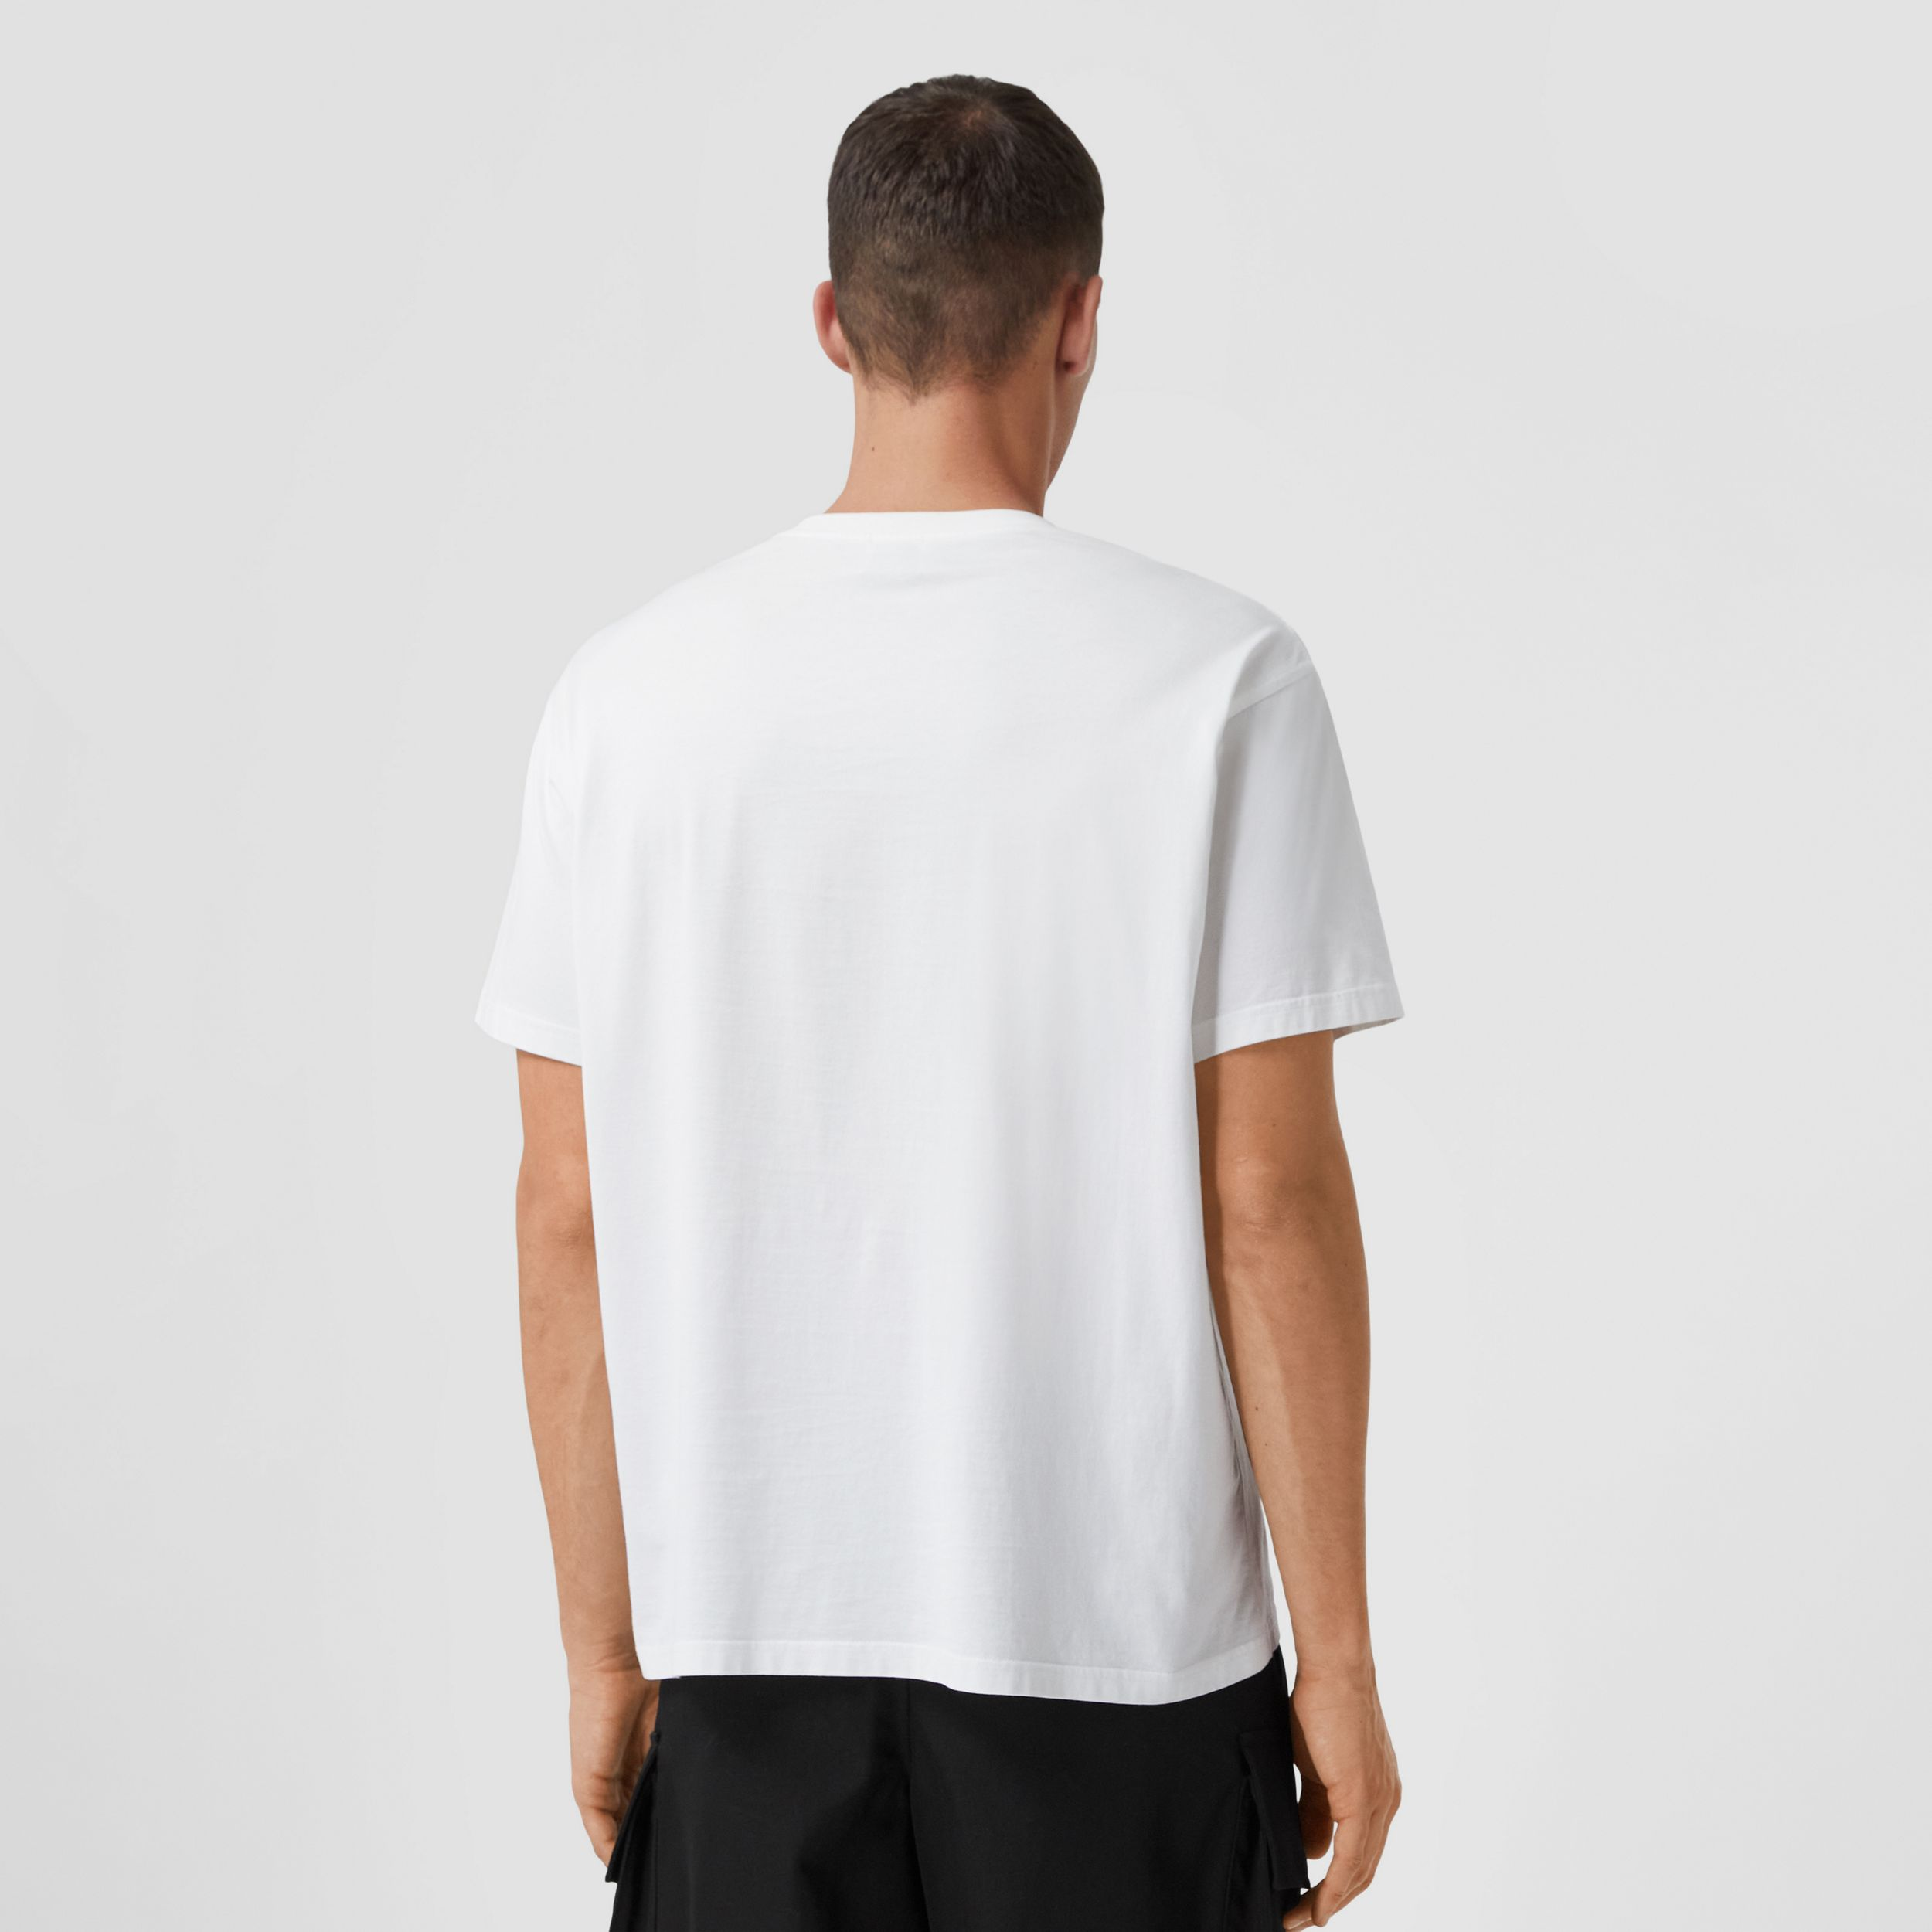 Monogram Motif Cotton Oversized T-shirt in White - Men | Burberry Australia - 3